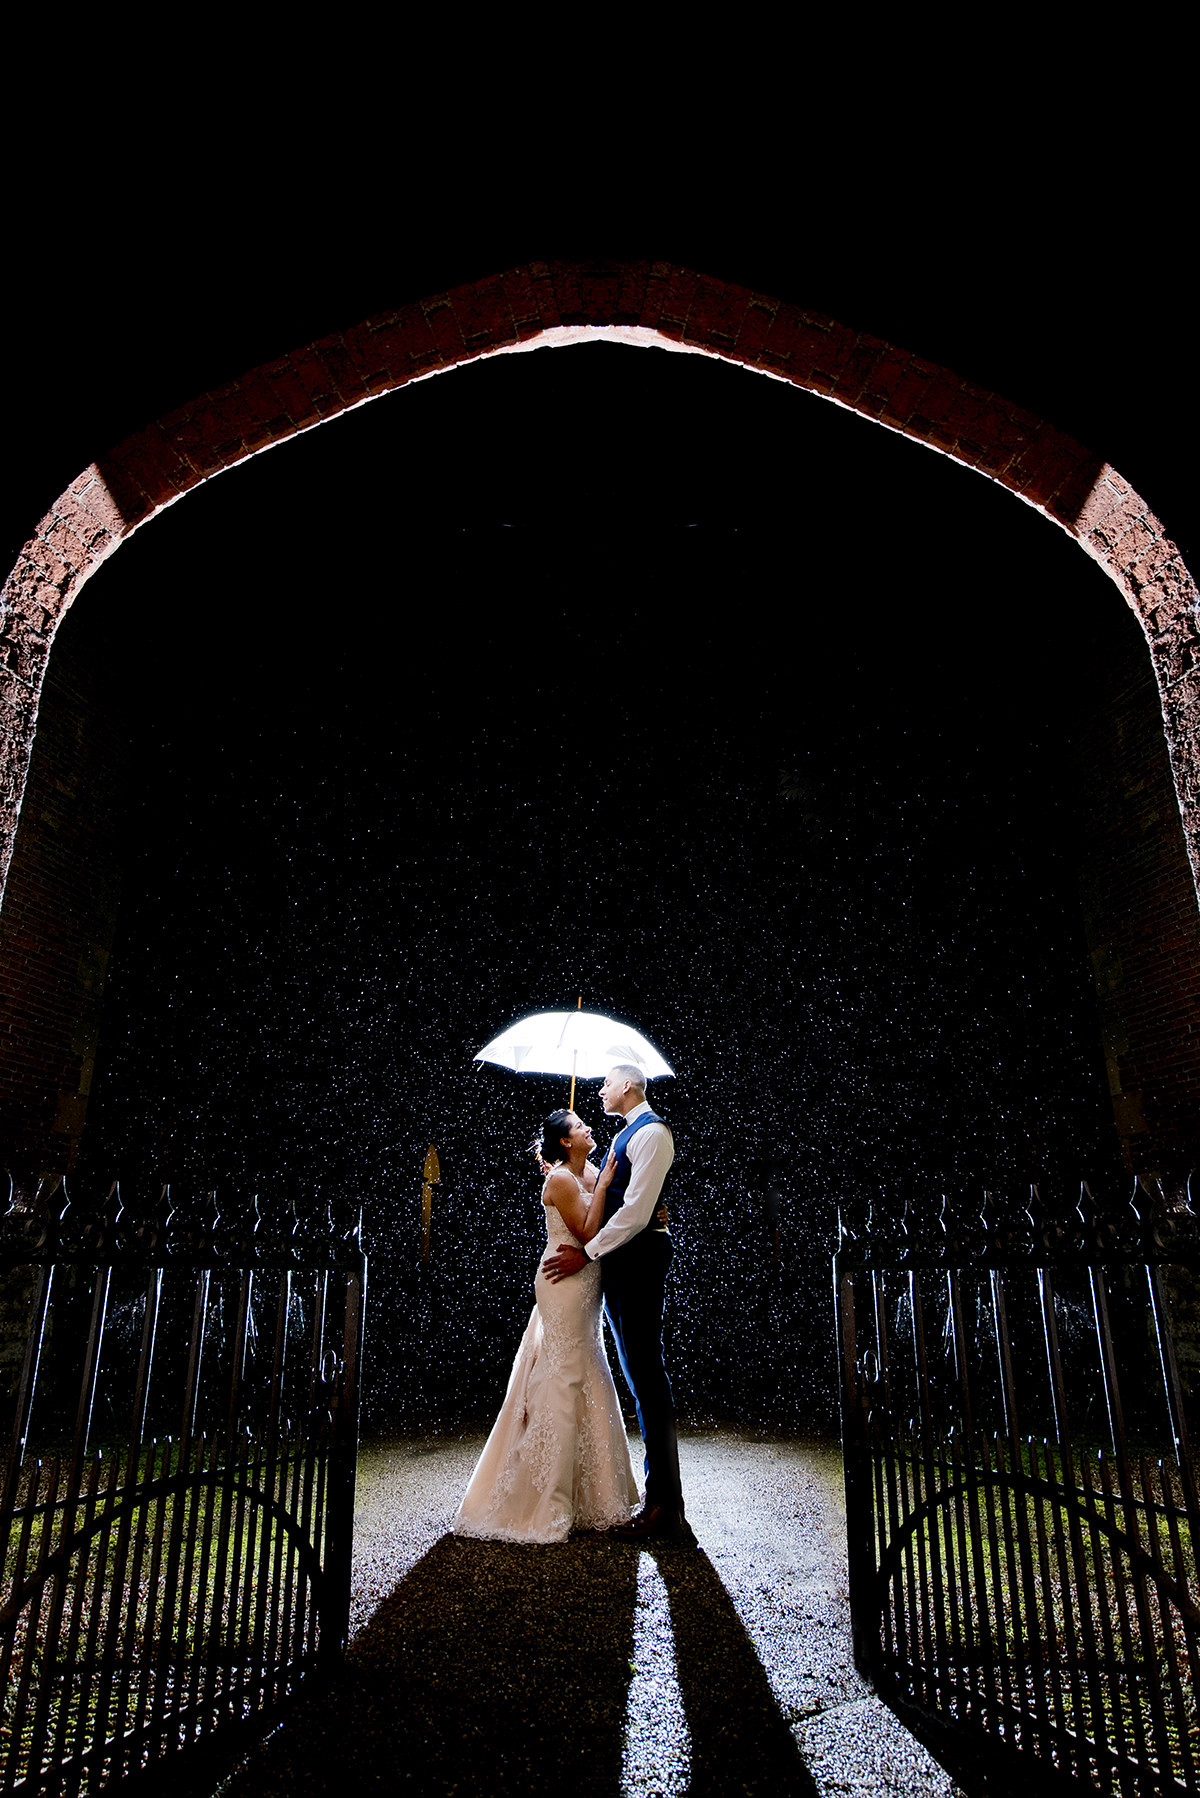 Bride and groom at Thrumpton Hall in the rain